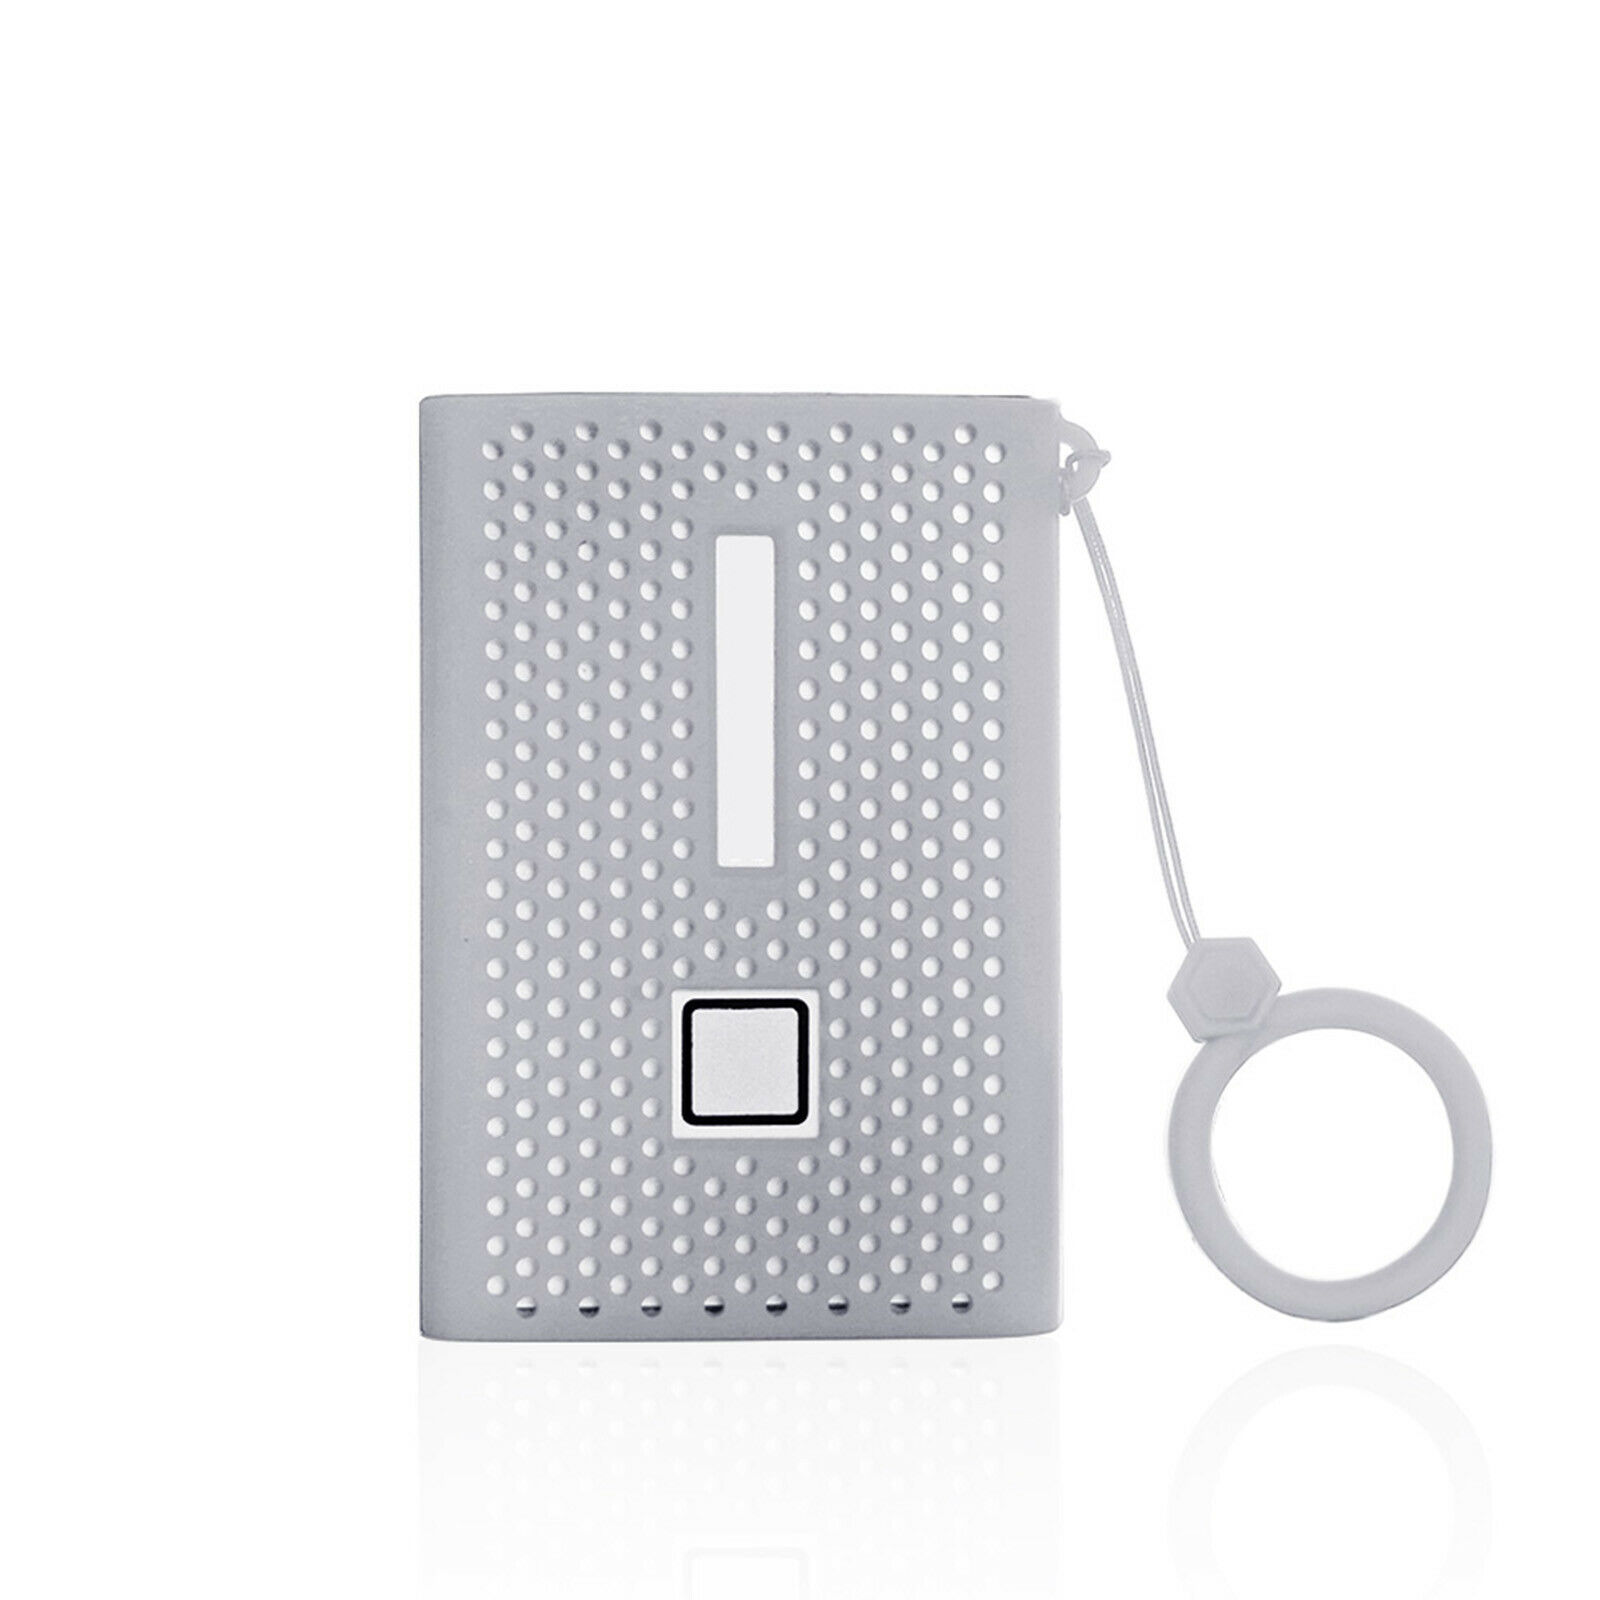 Grey Carrying Storage Bag Grey Lining Hard Case for Samsung T7 Touch Portable SSD 1TB//2TB//500GB case only, fits 1 SSD